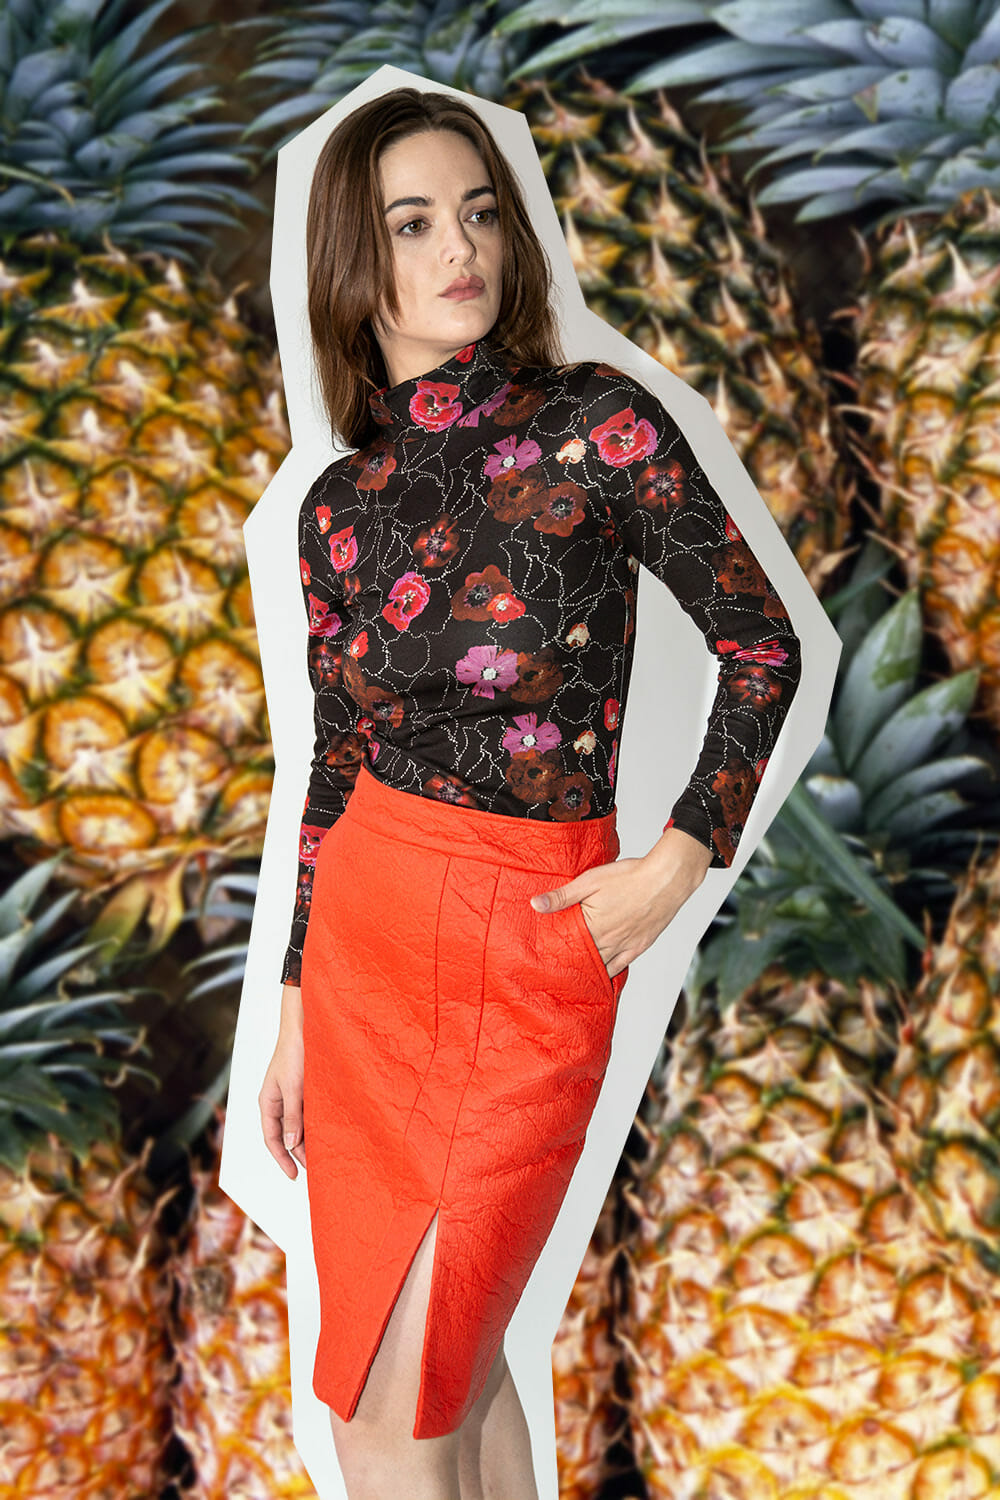 Helder Antwerp eco friendly clothing from Pineapple leather